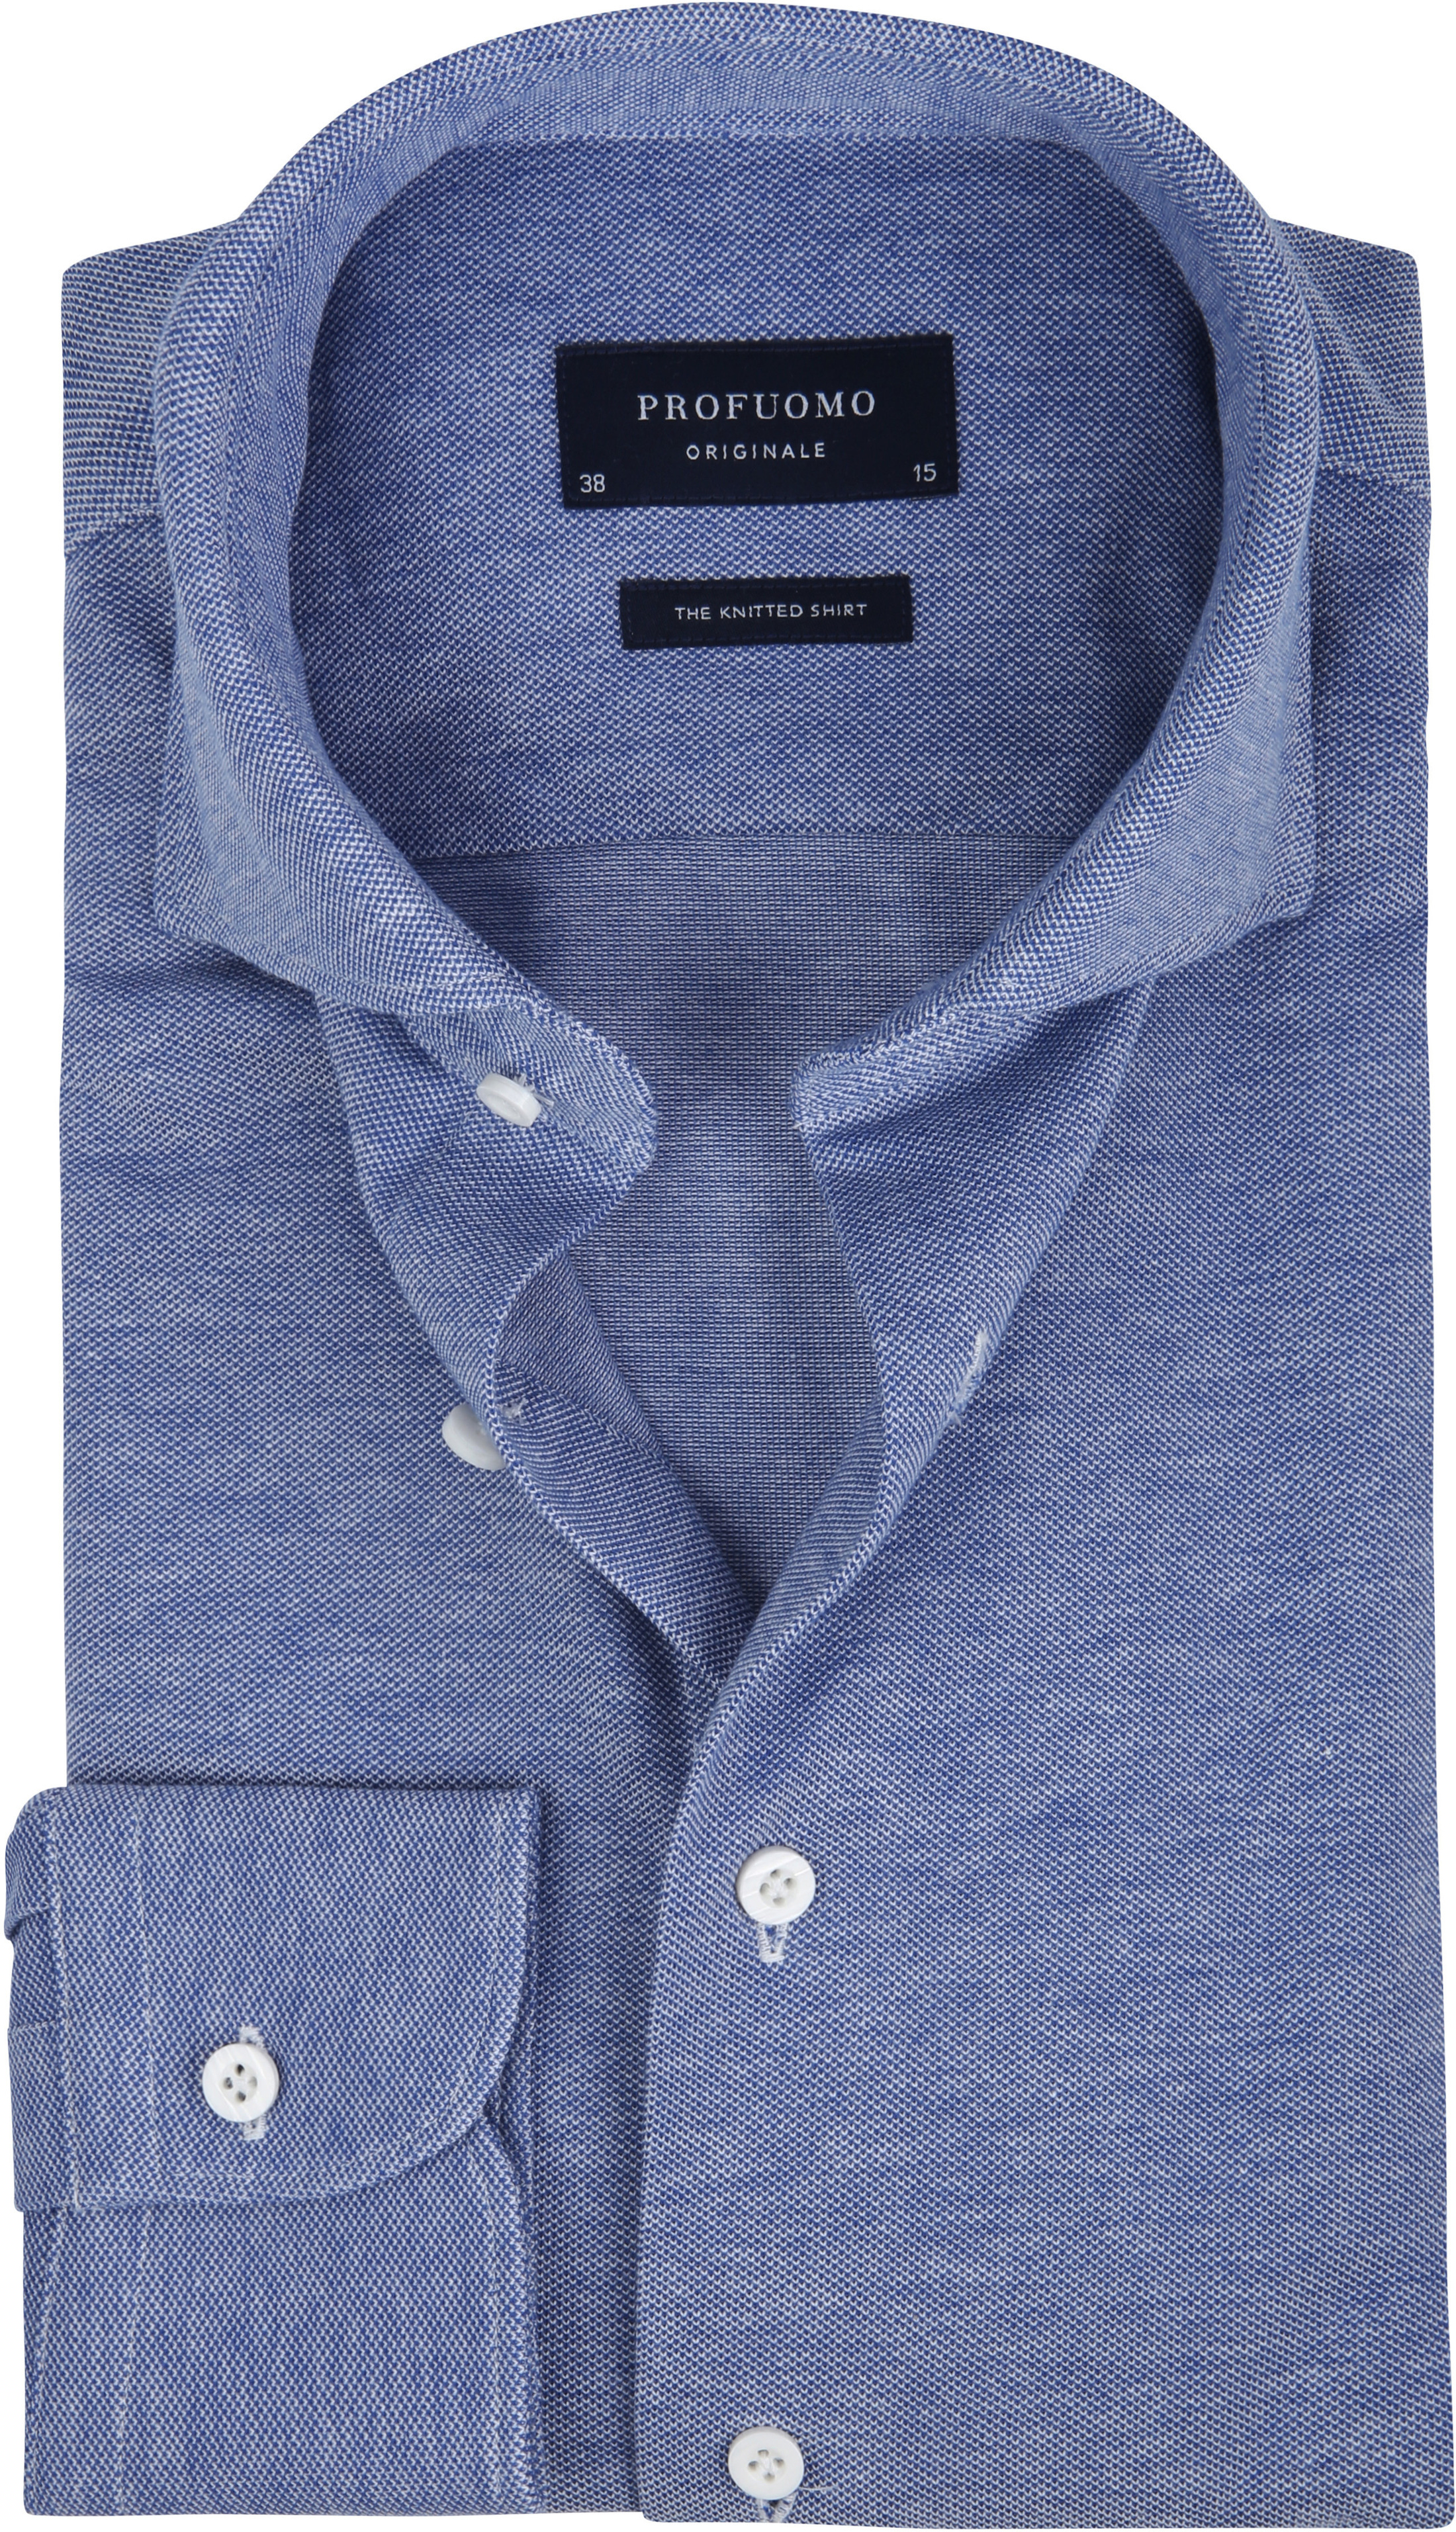 another chance e0cb7 db0dd Profuomo Hemd Knitted Slim Fit Mid Blau PP0H0A050 online ...